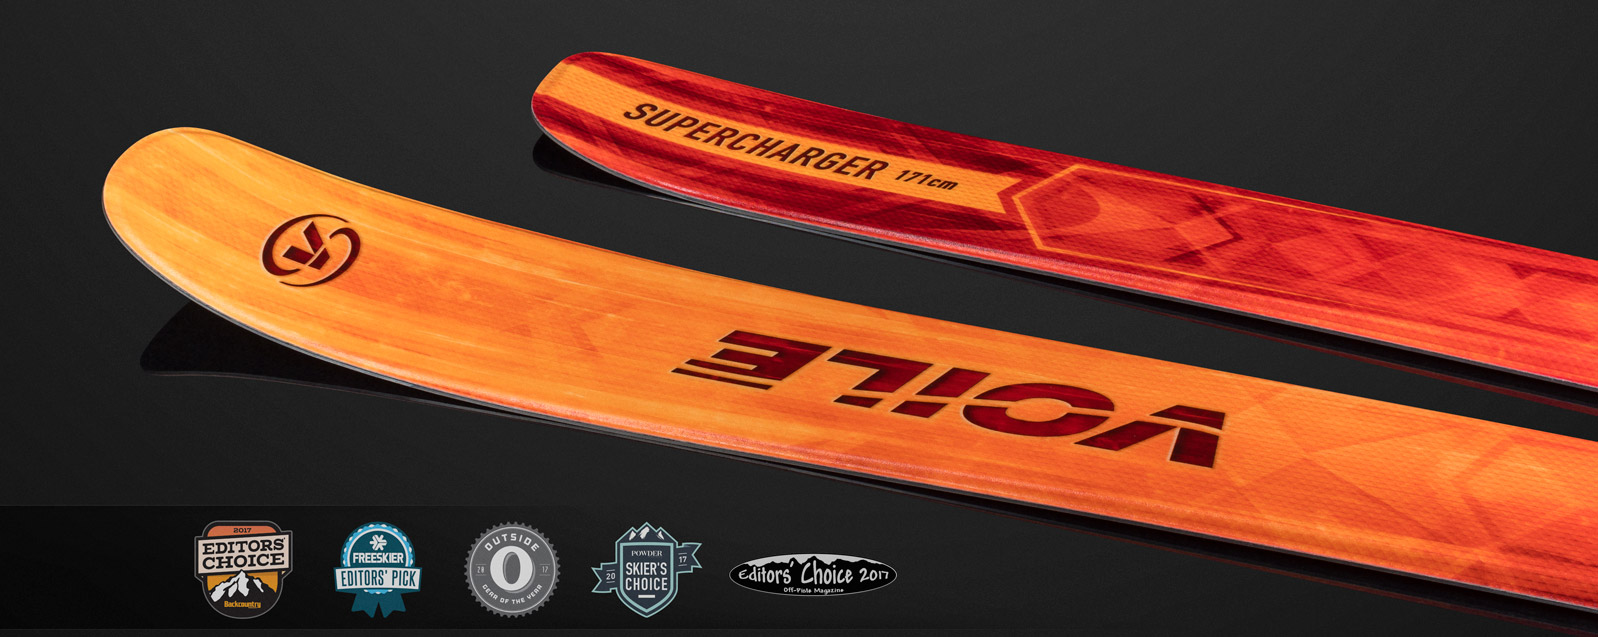 Voile SuperCharger Skis